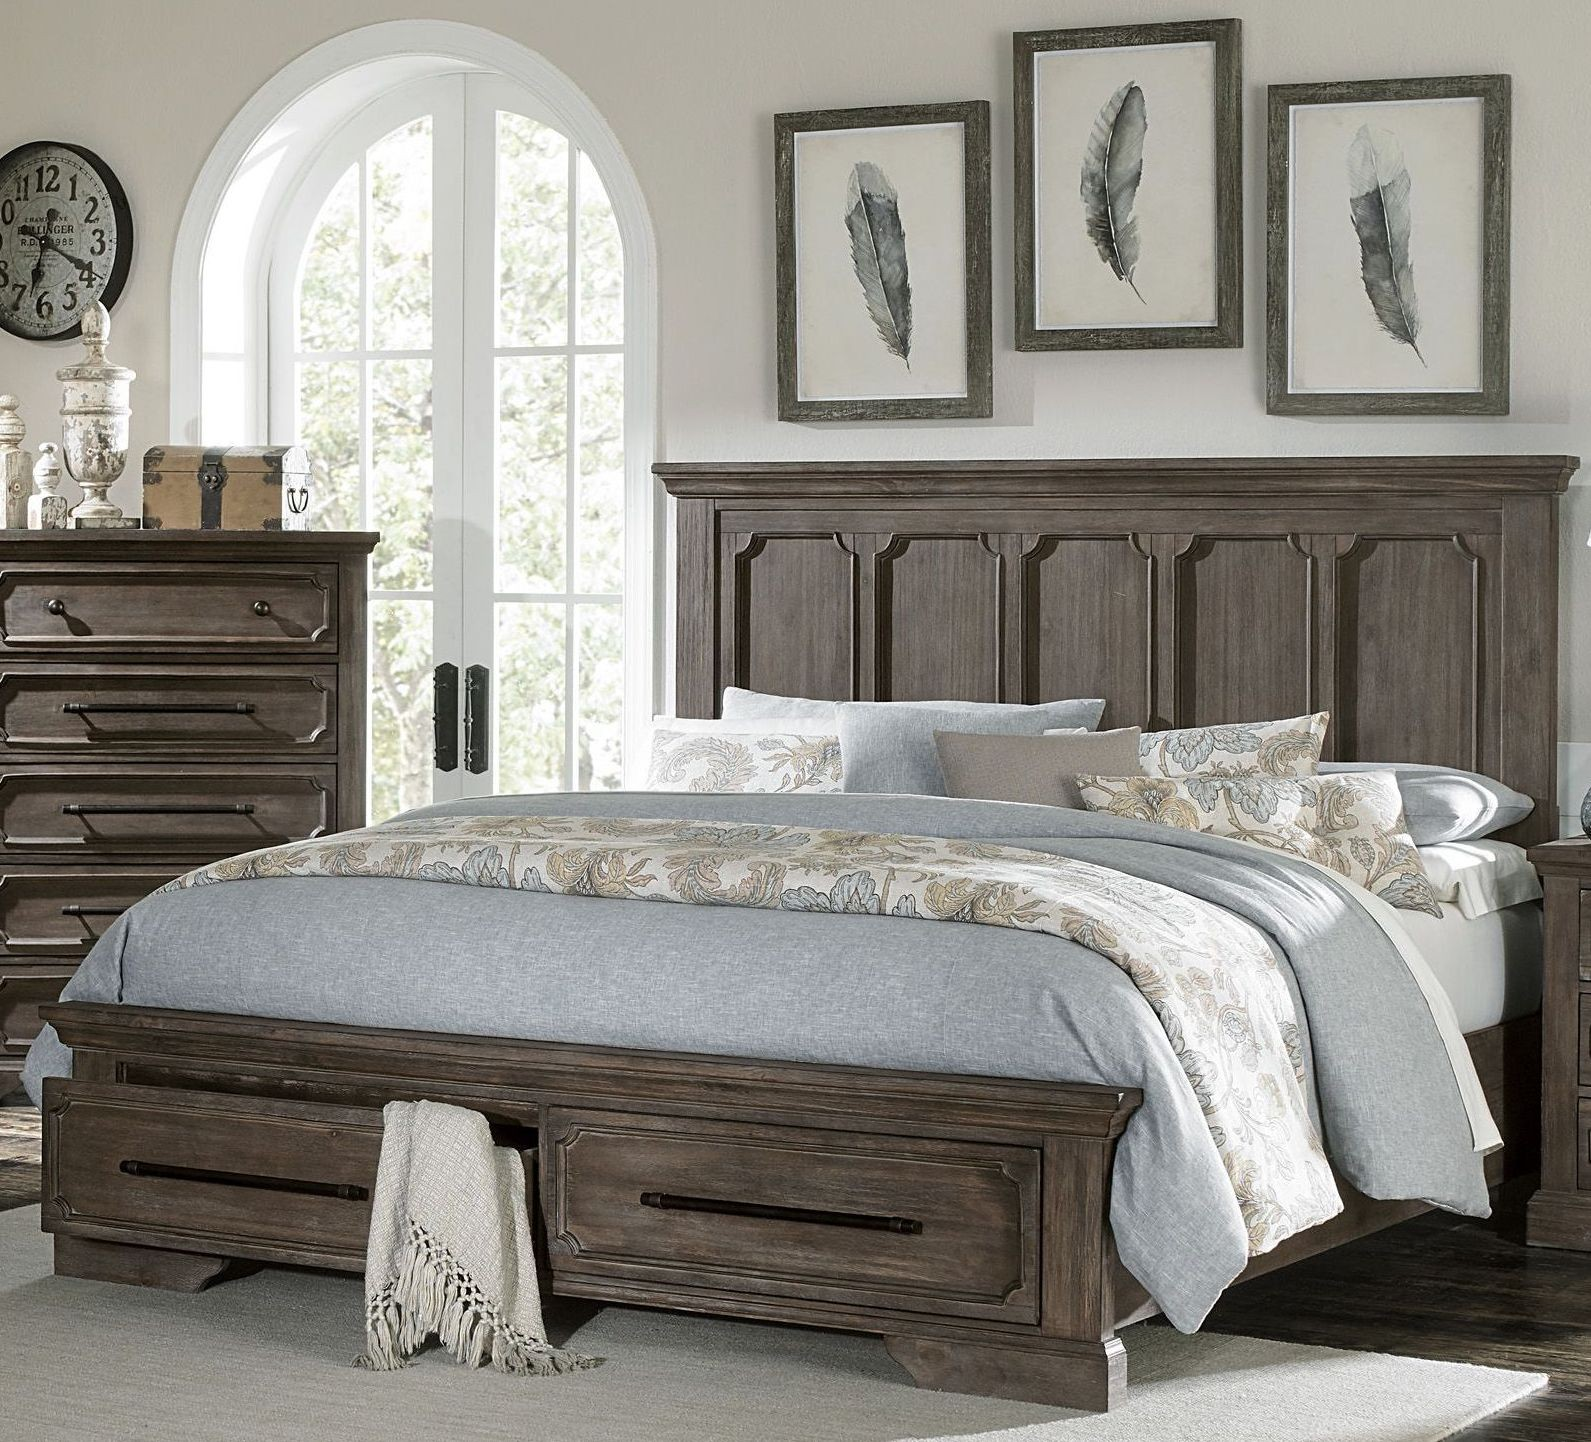 Toulon Unique Rustic Cal King Storage Bed From